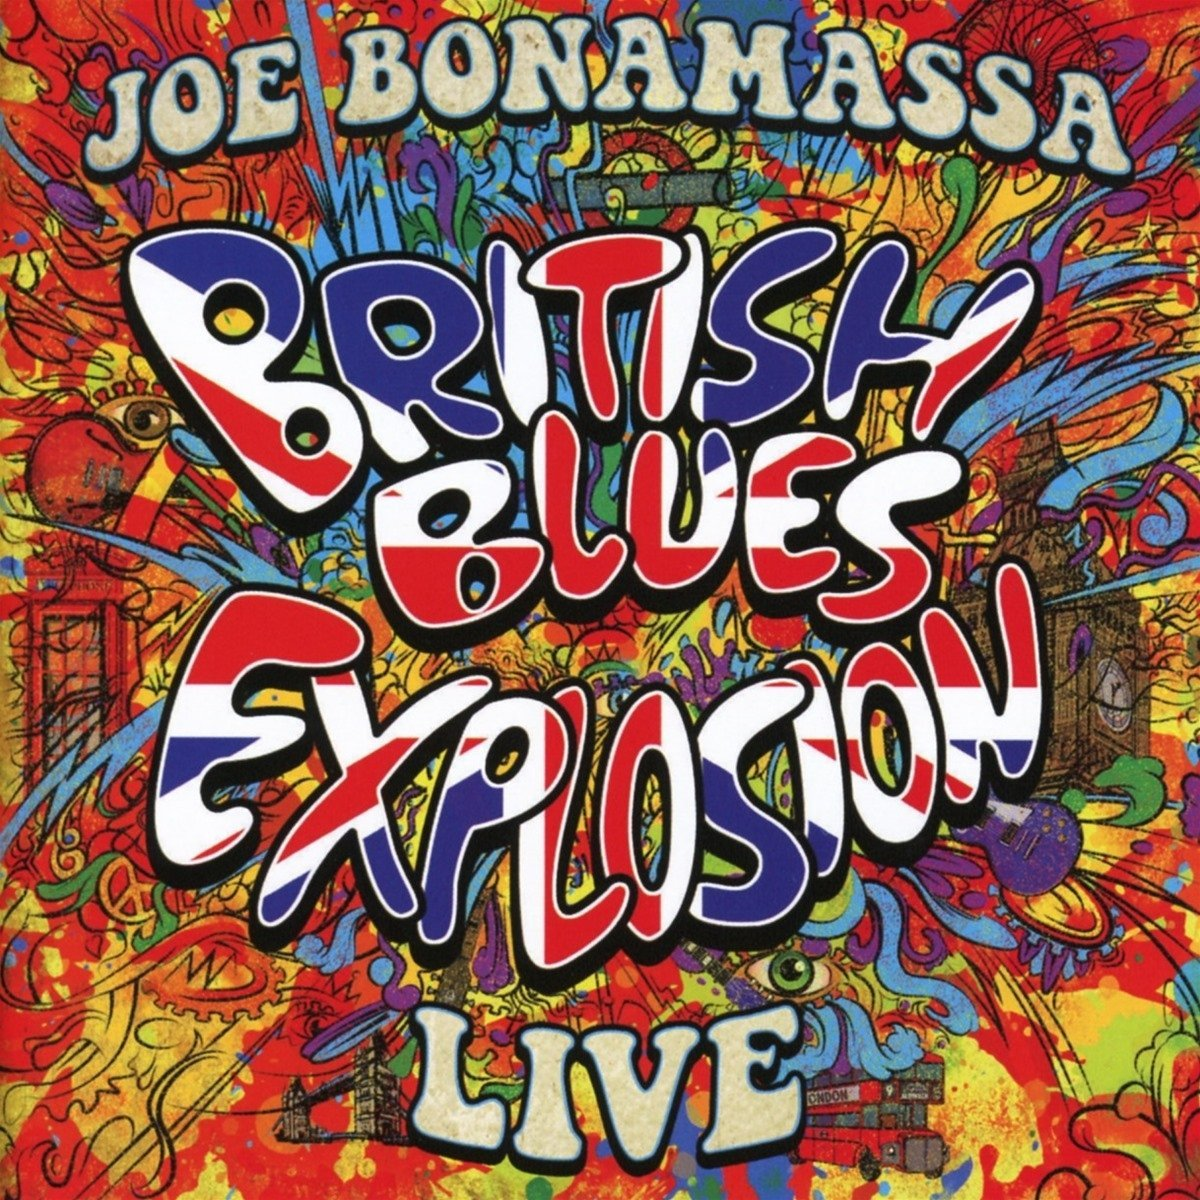 British Blues Explosion Live - Joe Bonamassa